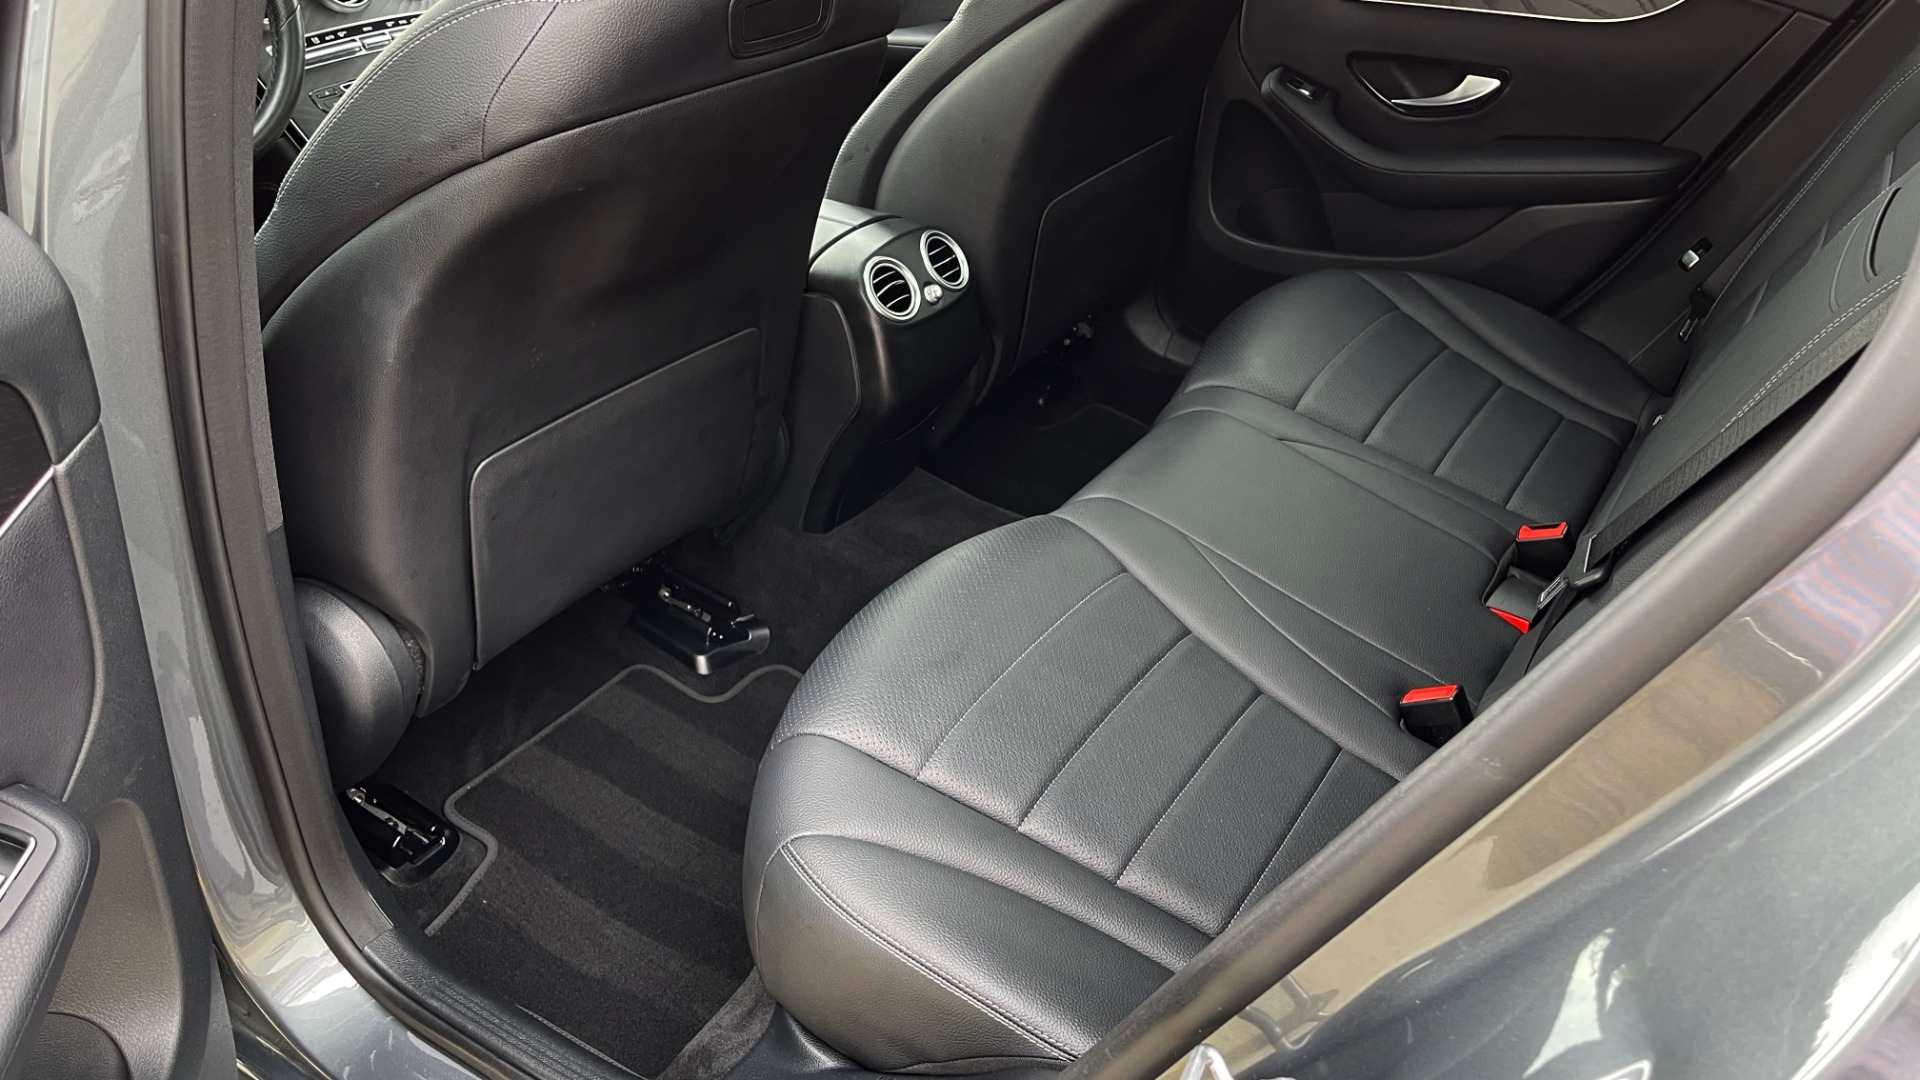 Used 2018 Mercedes-Benz GLC 300 4MATIC PREMIUM / PANO-ROOF / HTD STS / APPLE / REARVIEW for sale $34,295 at Formula Imports in Charlotte NC 28227 49